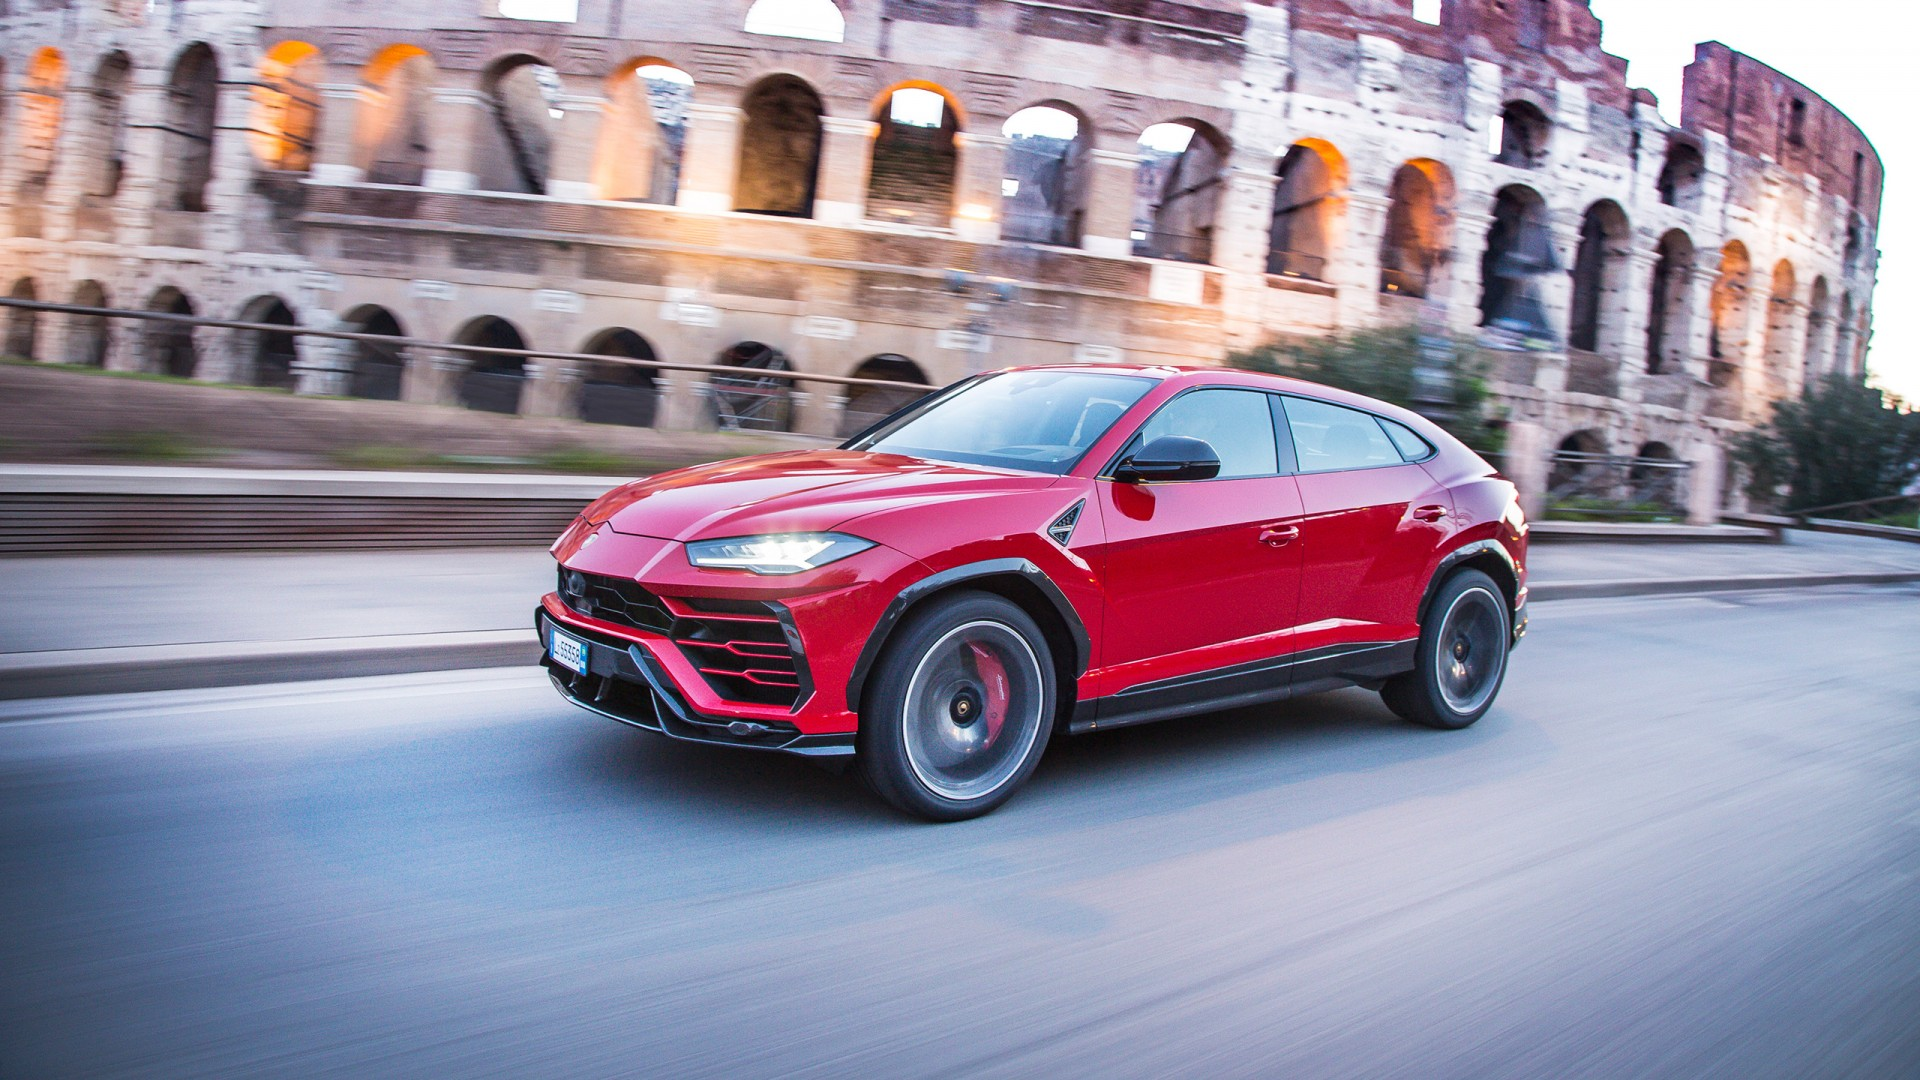 Jaguar Iphone Wallpaper Lamborghini Urus 2018 Wallpaper Hd Car Wallpapers Id